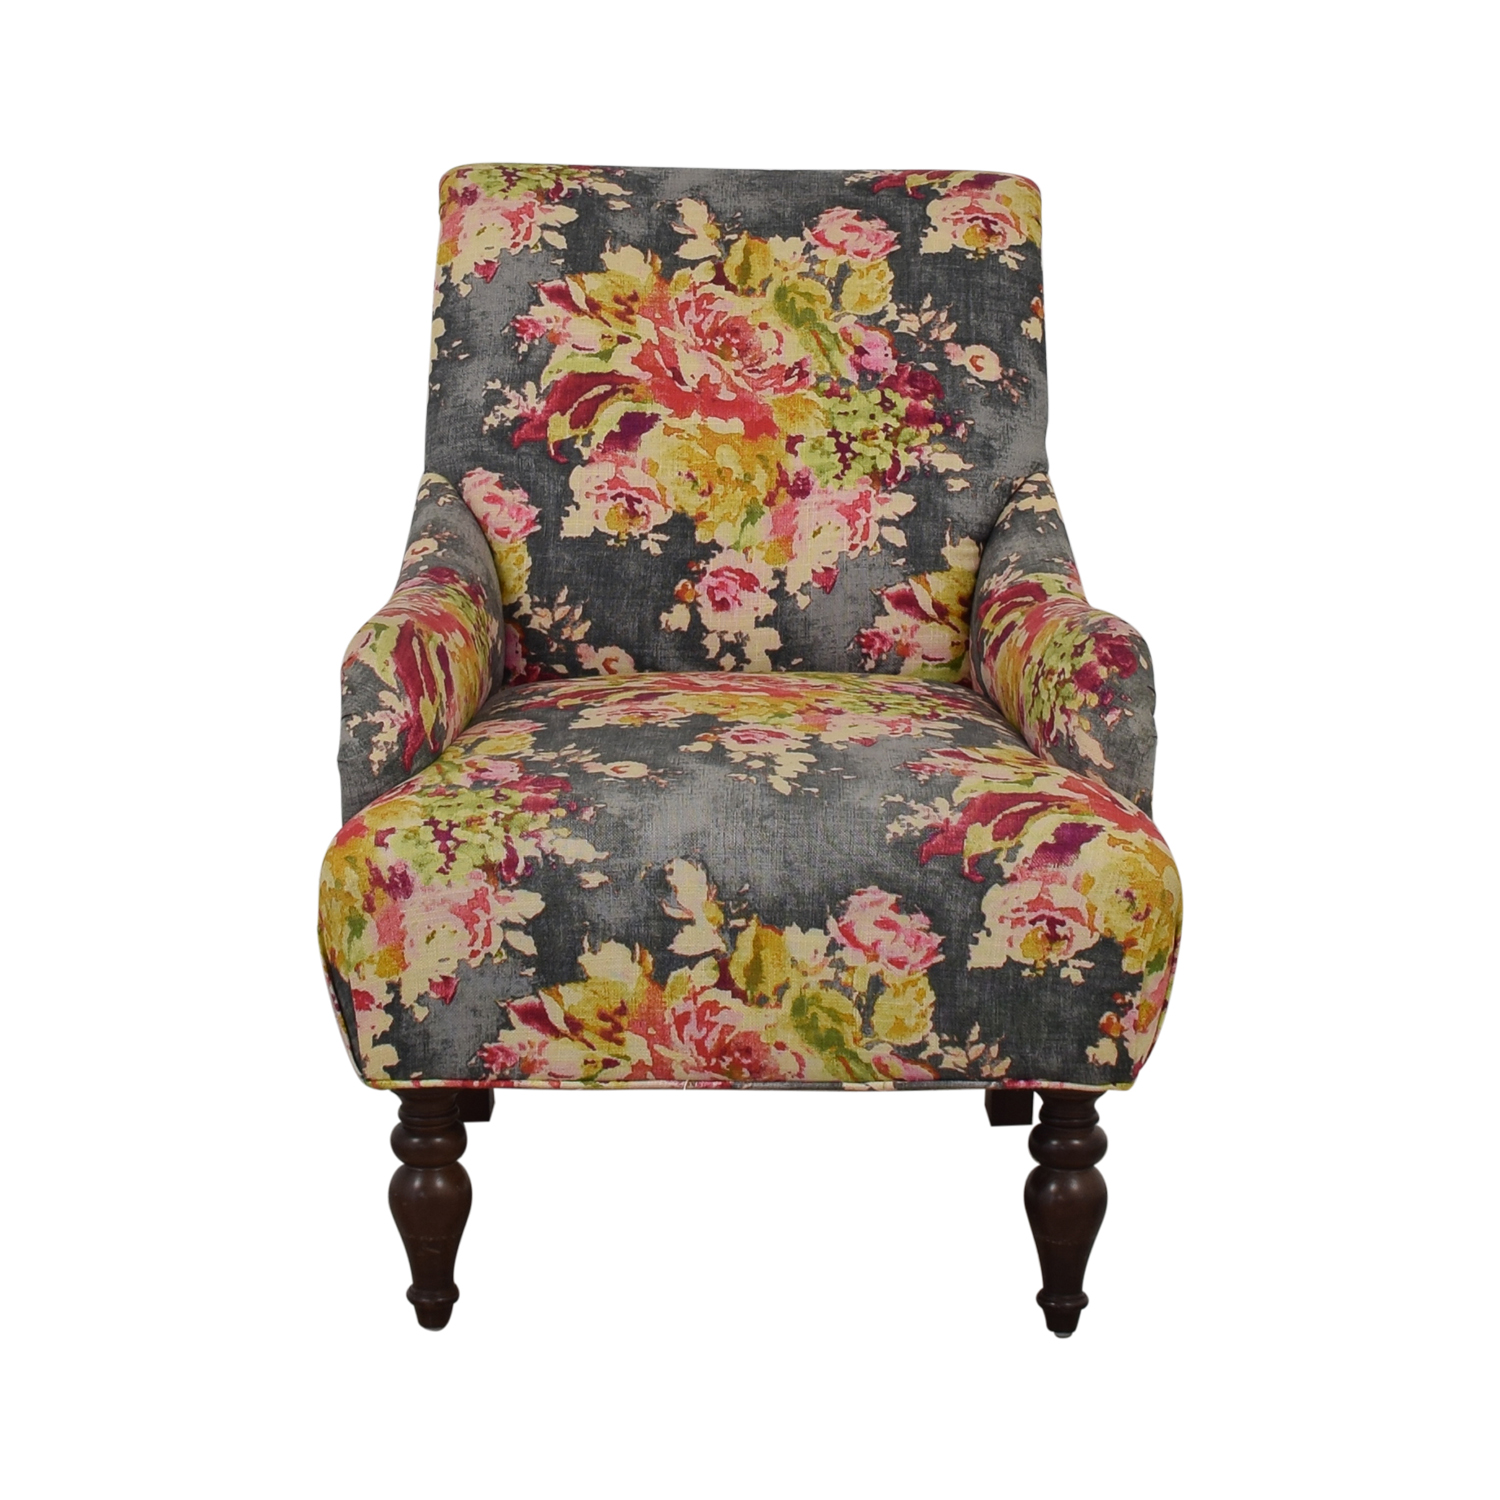 buy Raymour & Flanigan Floral Accent Chair Raymour & Flanigan Accent Chairs